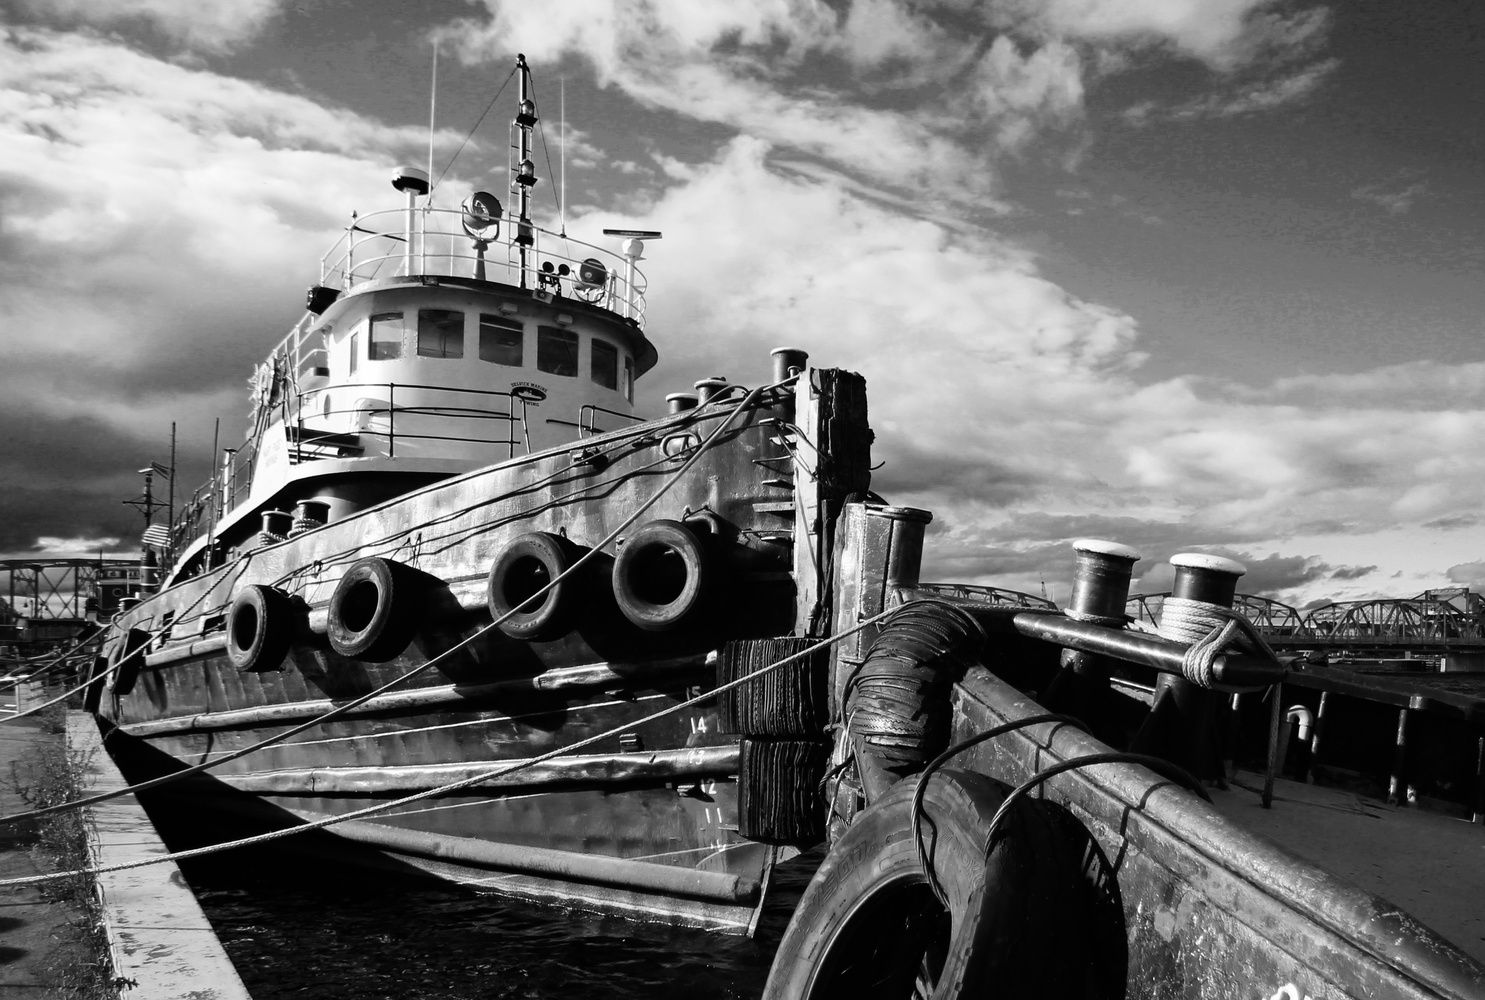 Tug Boat by Scott Seroka